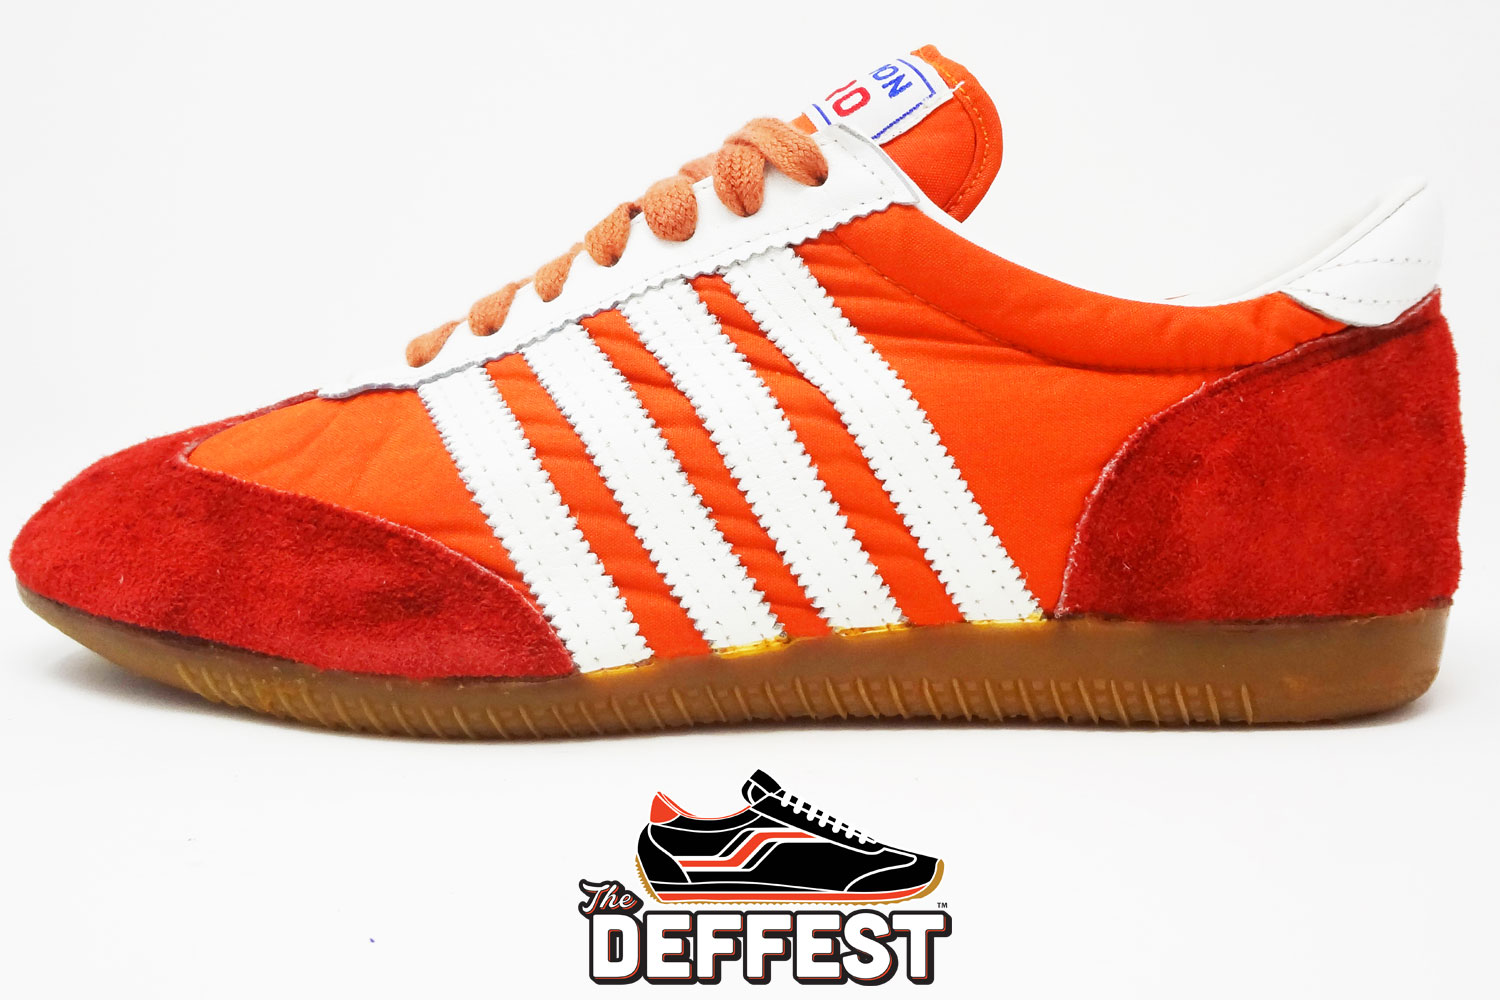 54673190b Old school Action Pro 1970s 1980s vintage sneakers profile view @ The  Deffest